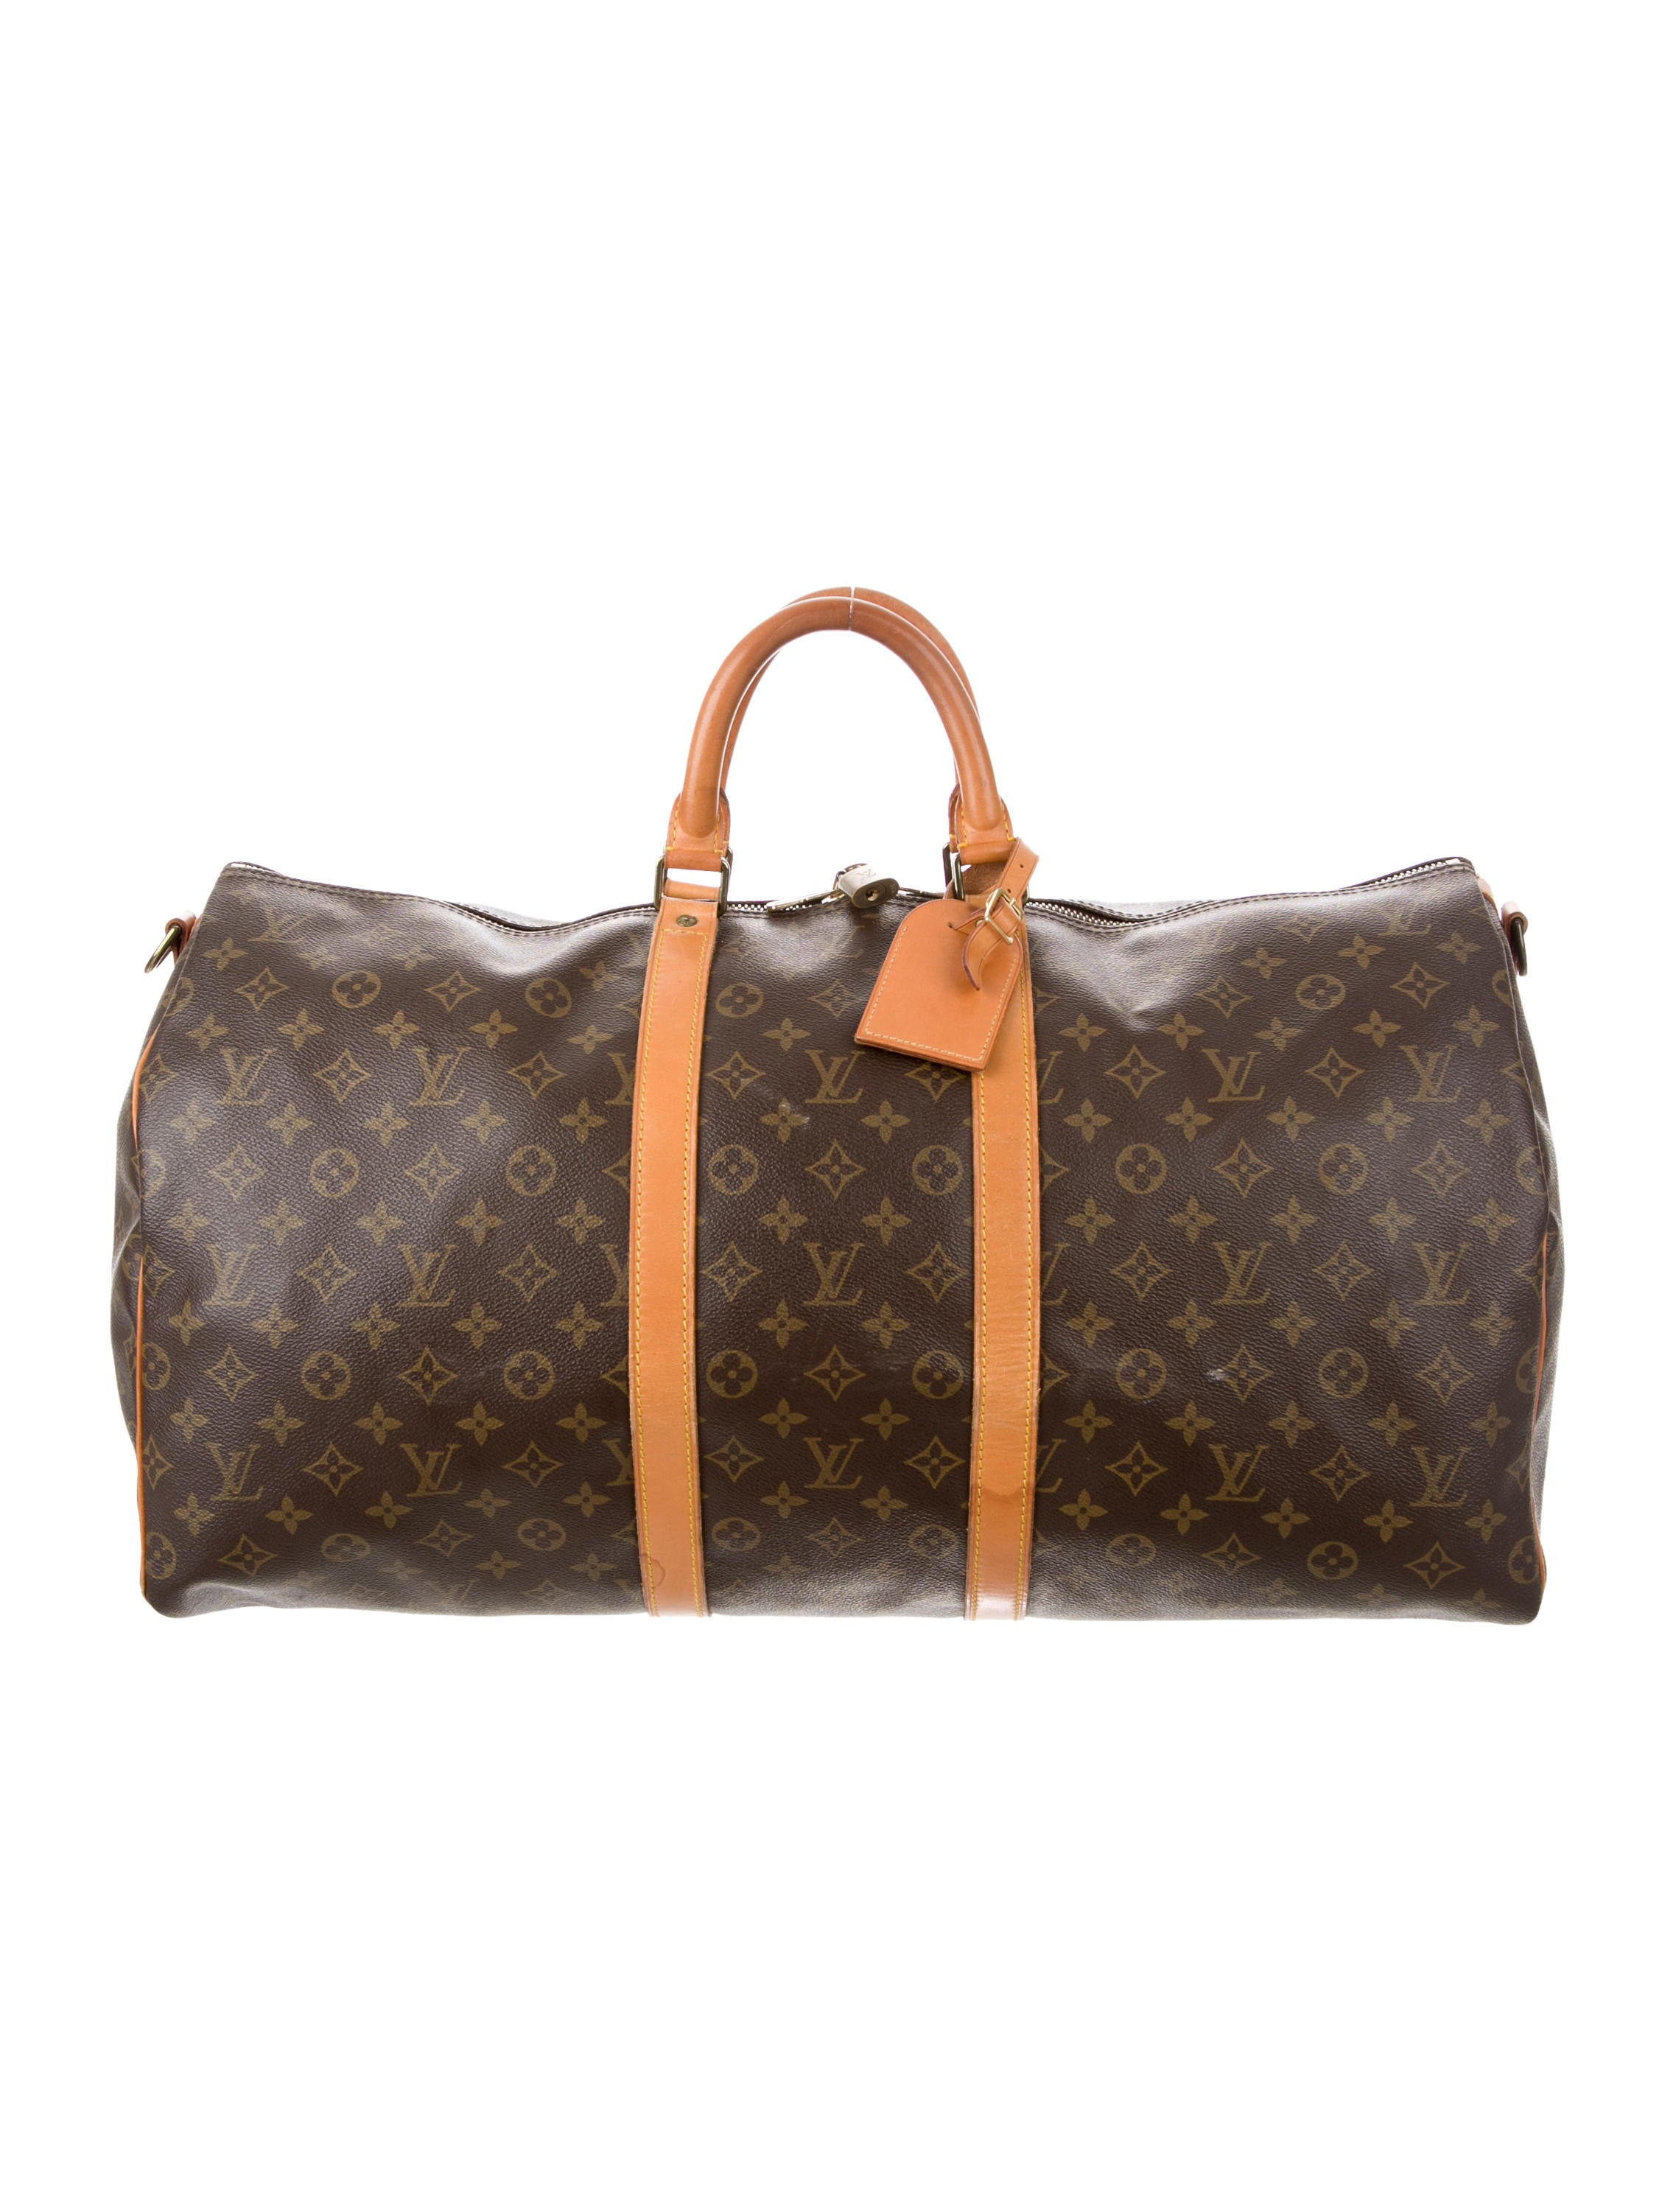 louis vuitton monogram keepall 55 bags lou119356 the. Black Bedroom Furniture Sets. Home Design Ideas